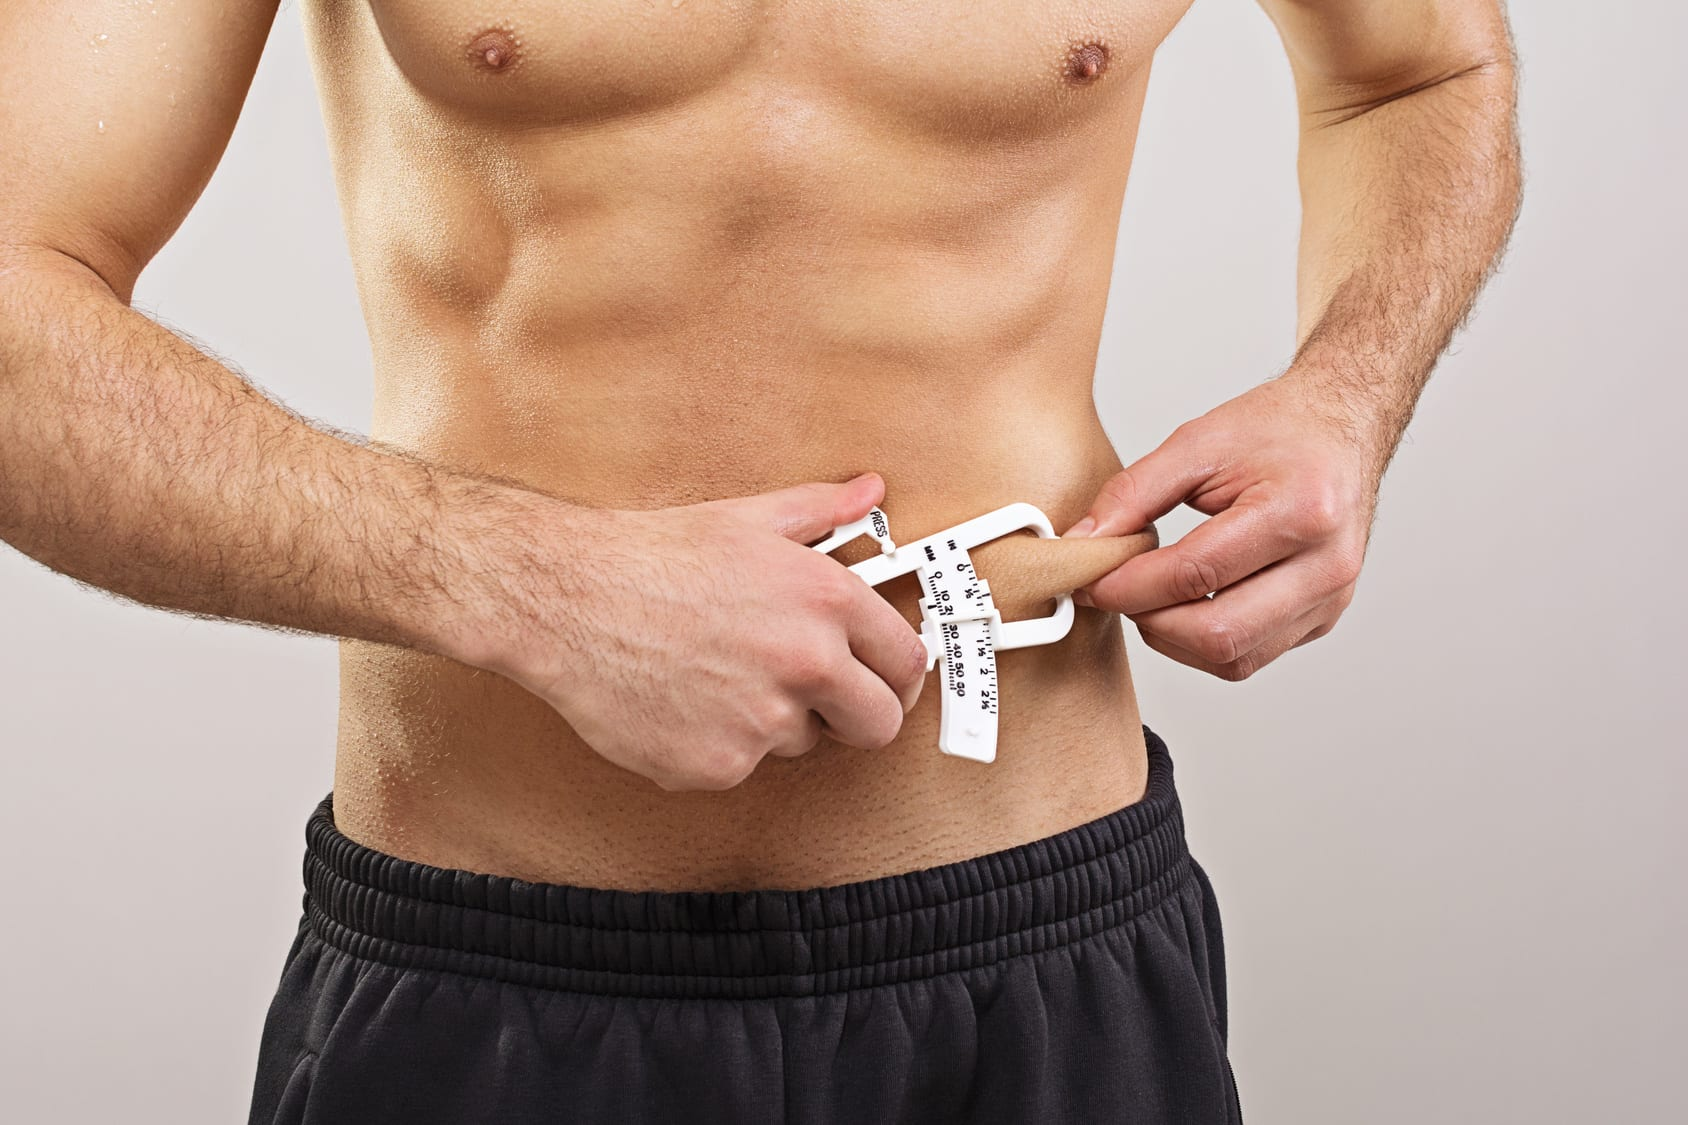 Body Fat Percentage Comparisons For Men And Women Do You Really Need To Be Tested